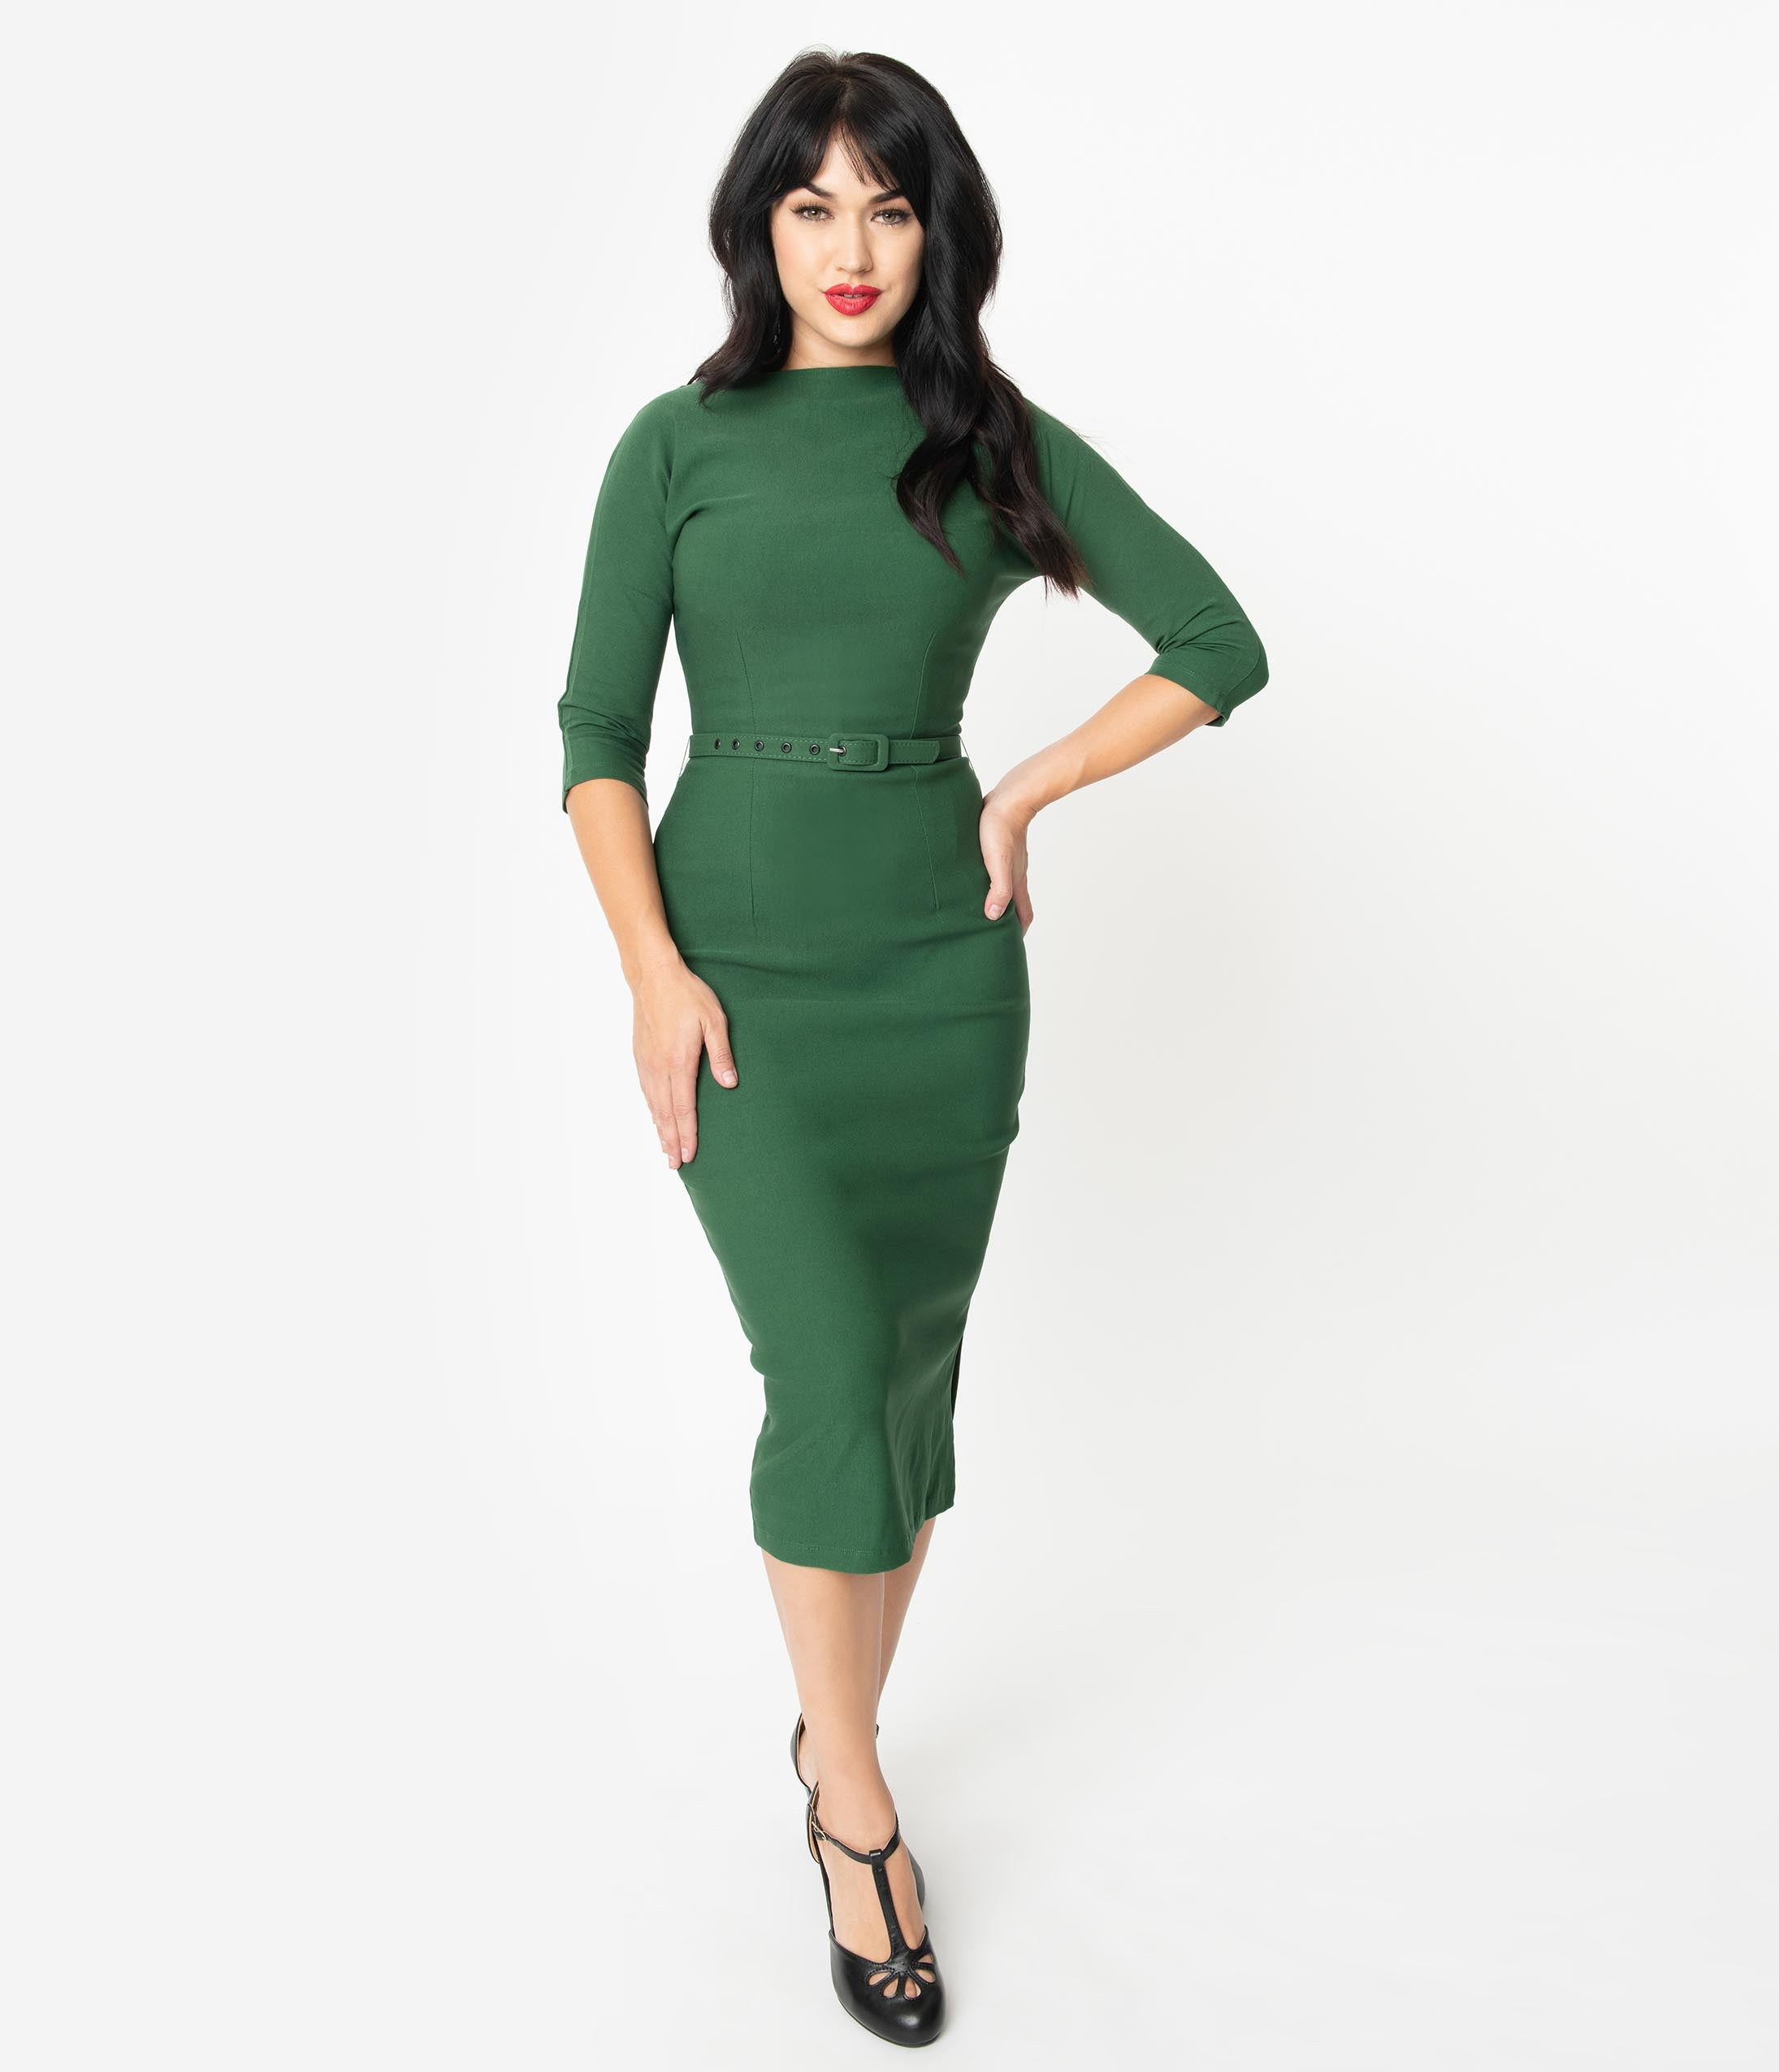 Vintage Style Gift Ideas for Christmas Unique Vintage 1940S Style Green Stretch Sleeved Adelia Wiggle Dress $98.00 AT vintagedancer.com